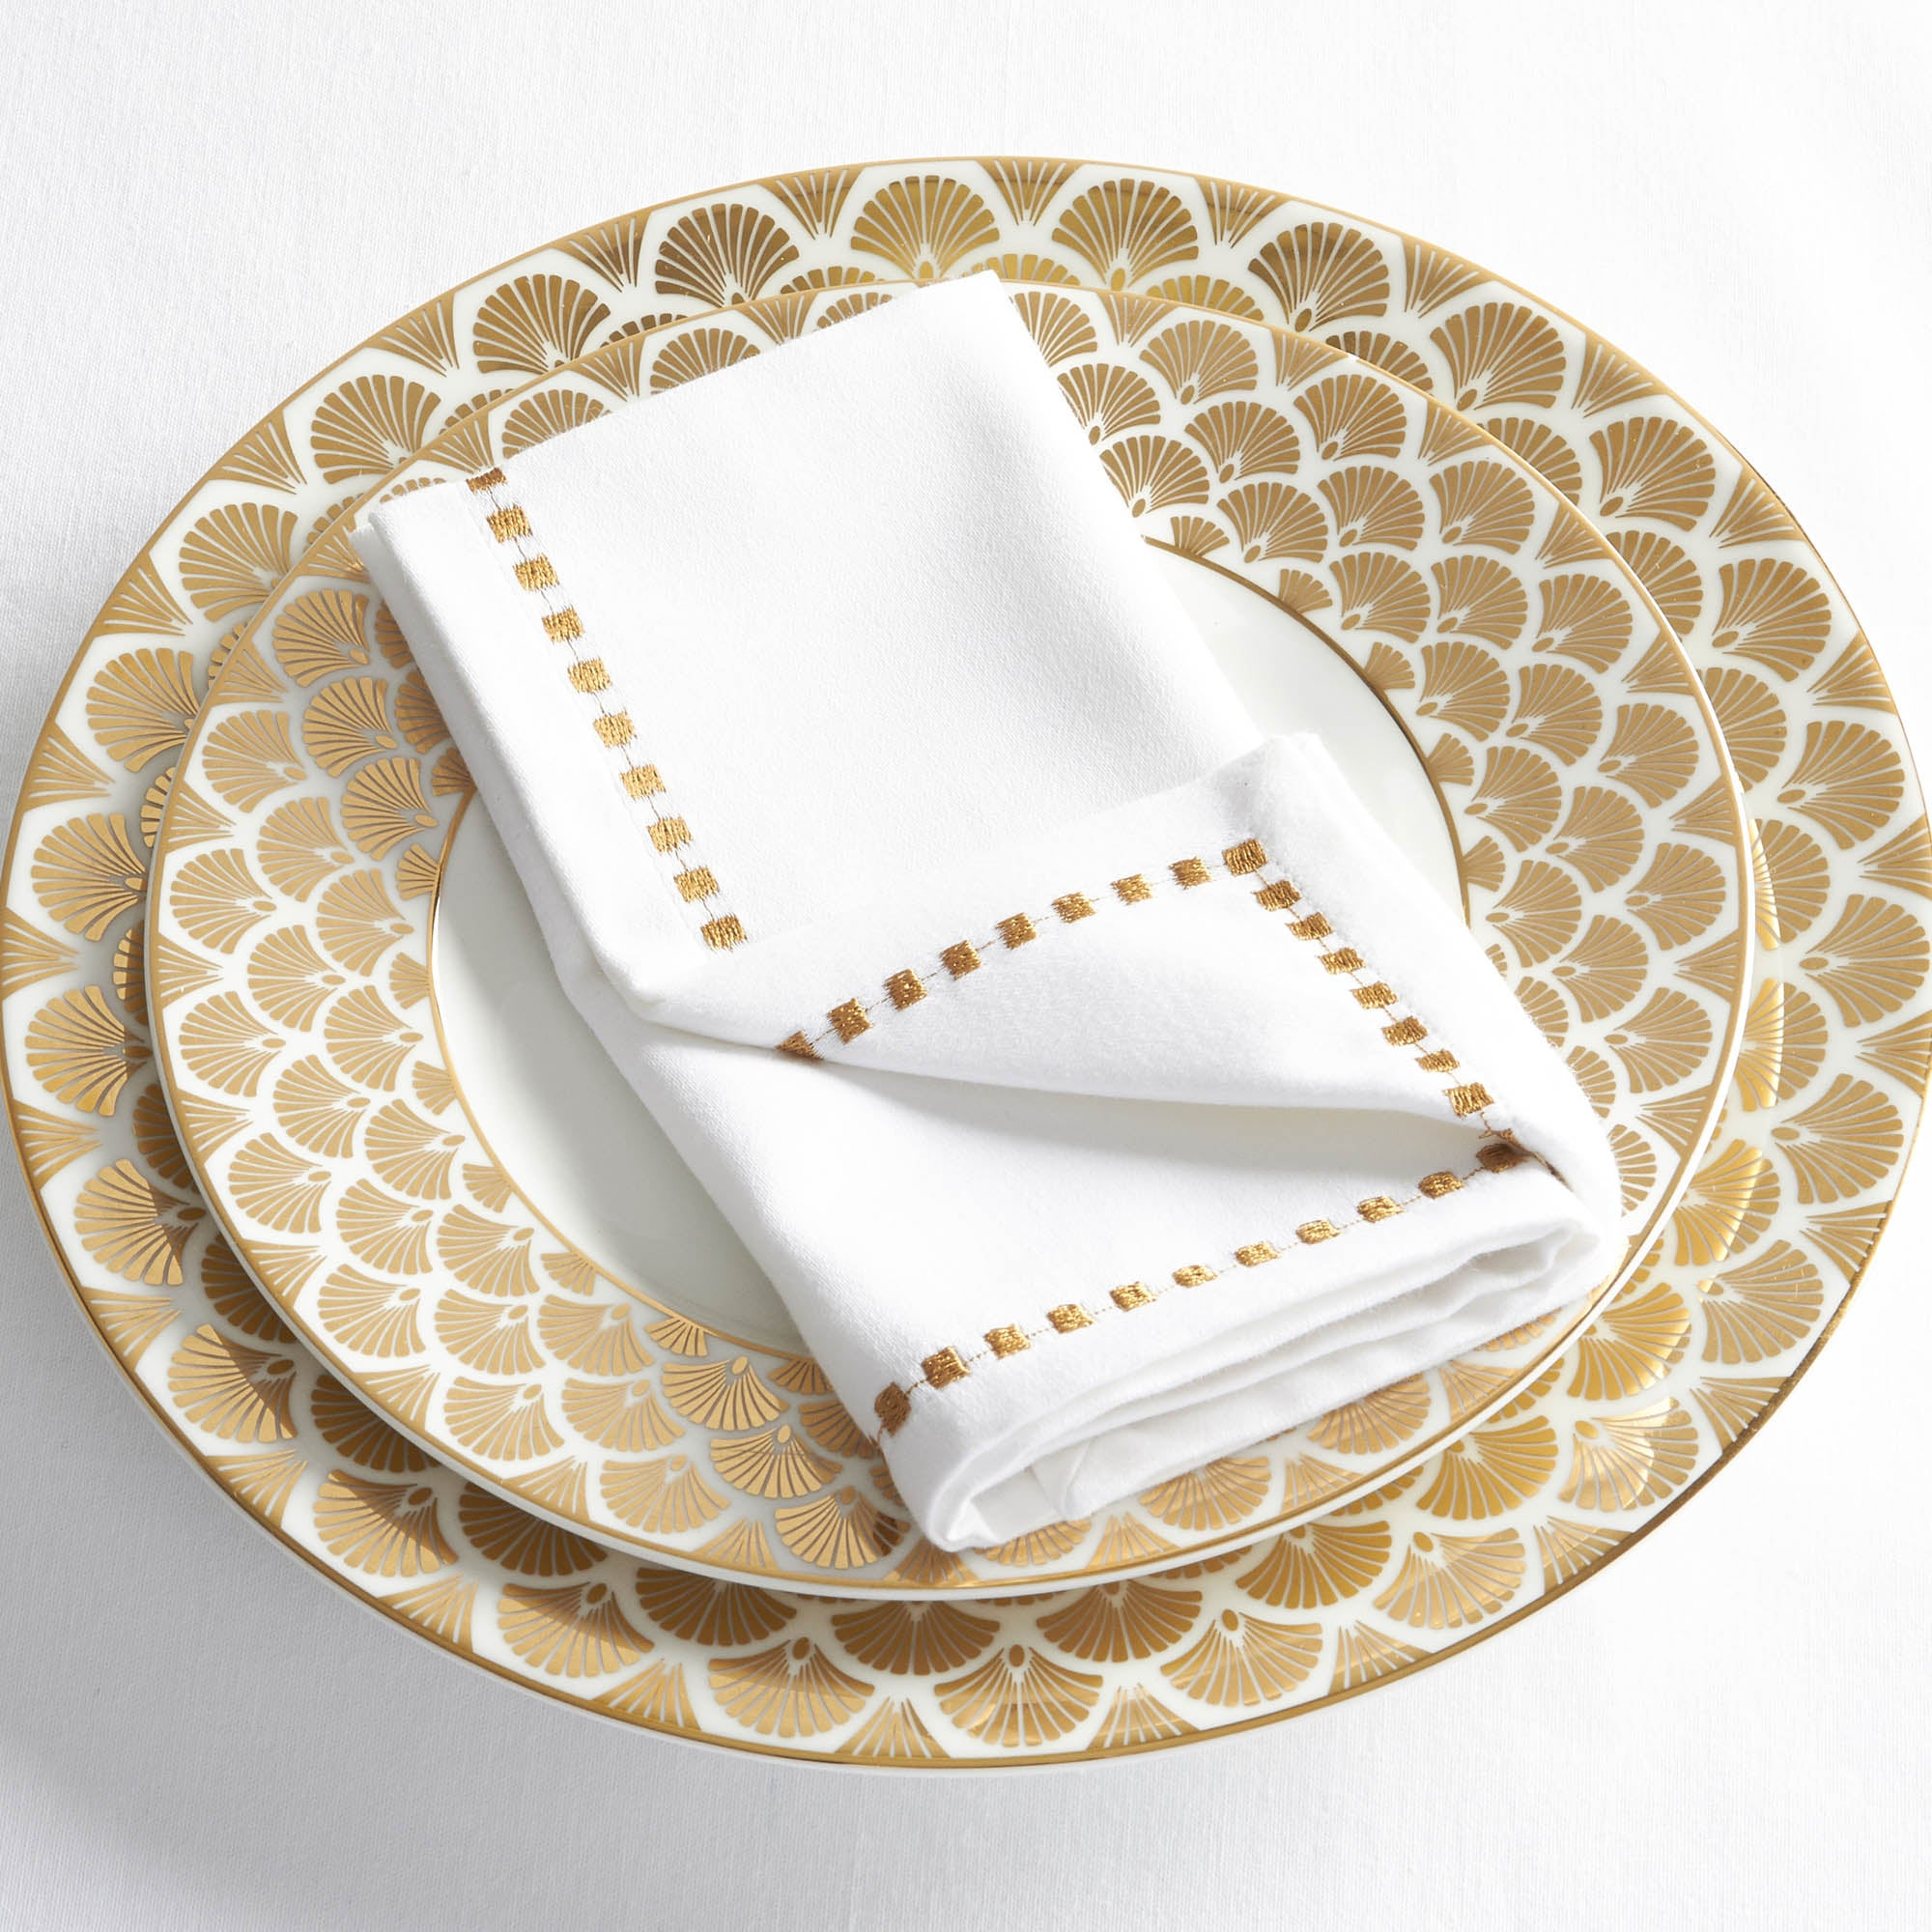 Image of 5A Fifth Avenue 4 Pack of White Napkins White